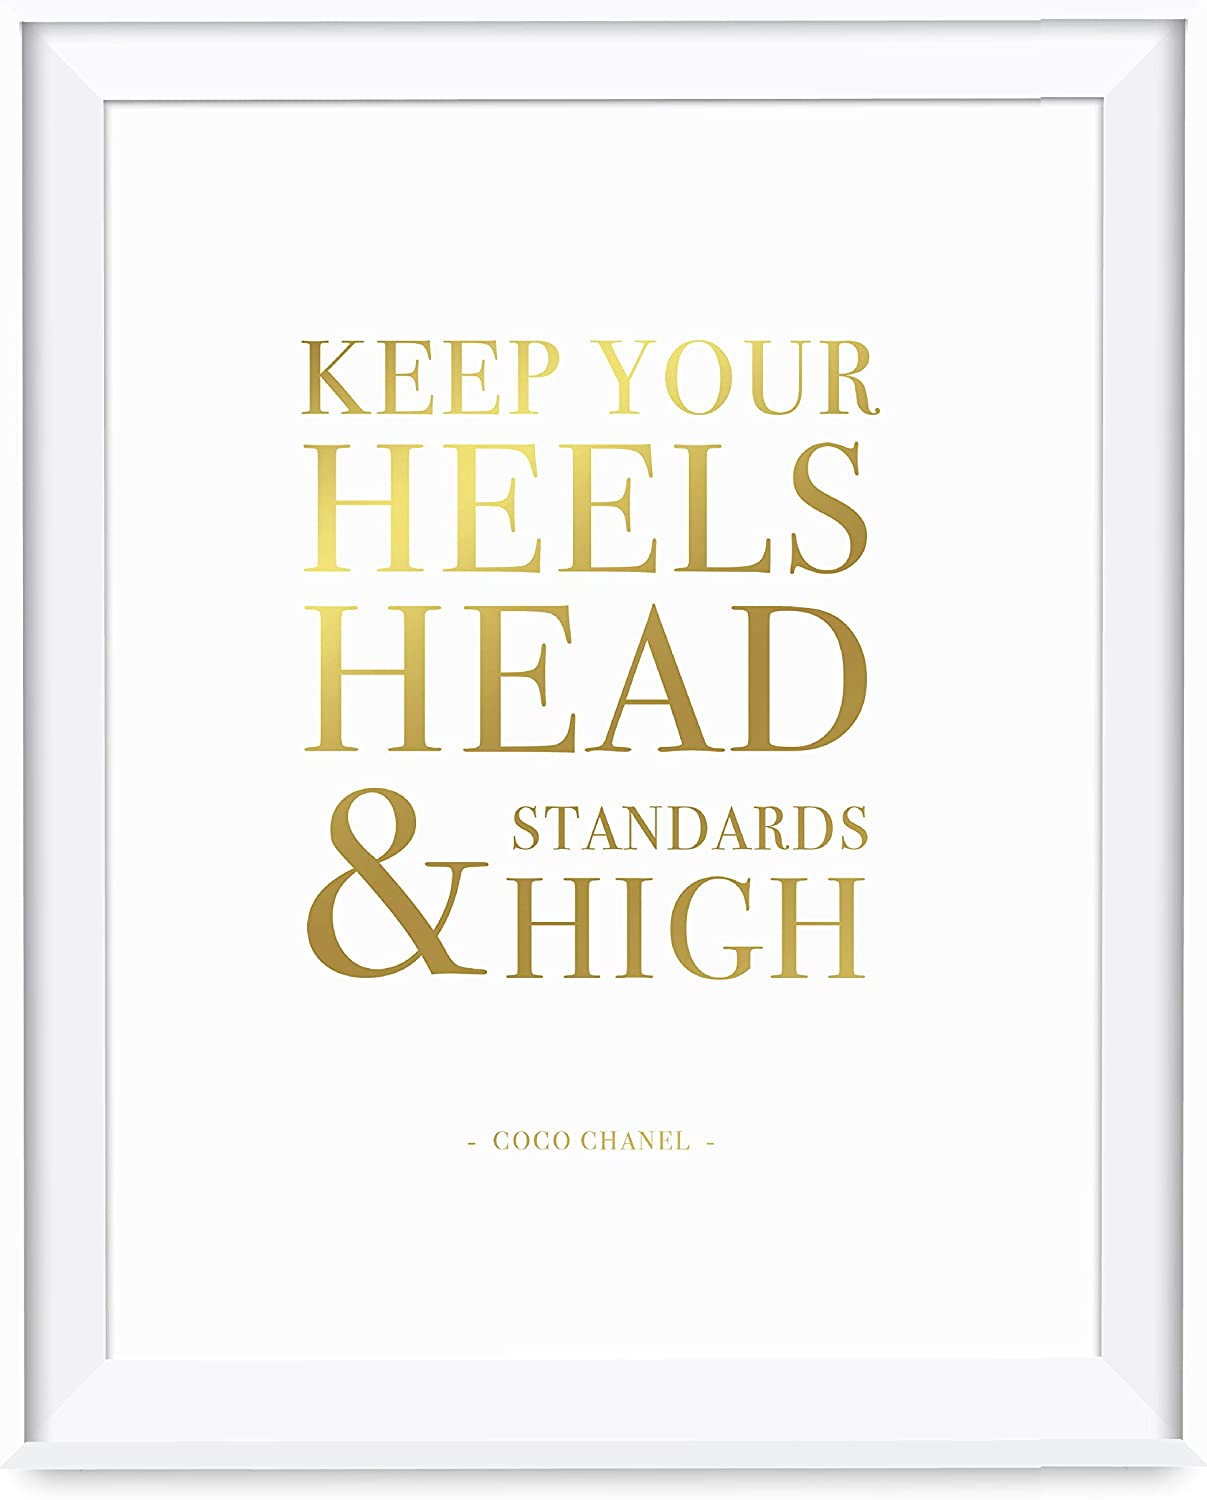 Andaz Press Women's Wall Art Collection, 8.5x11-inch, Metallic Gold Ink, Keep Your Heels, Head & Standards High, Coco Chanel, 1-Pack, Mother's Day Christmas Birthday Gift Print, Unframed